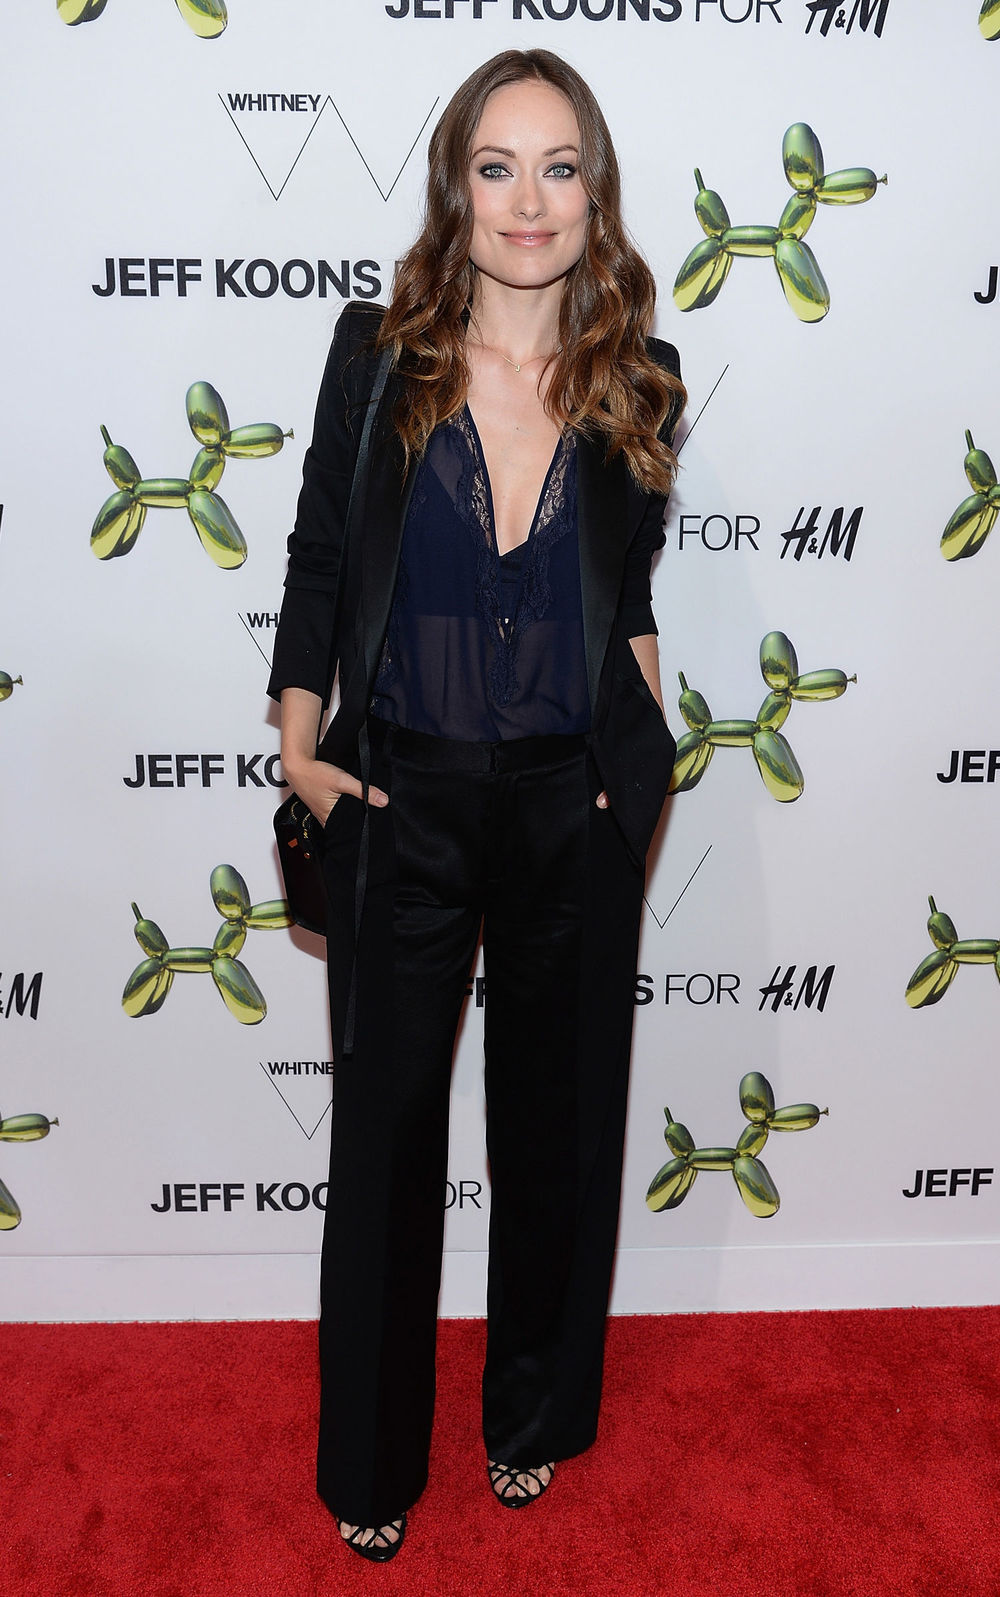 olivia-wilde-h-and-m-pantsuit-jeff-koons-bag-main.jpg